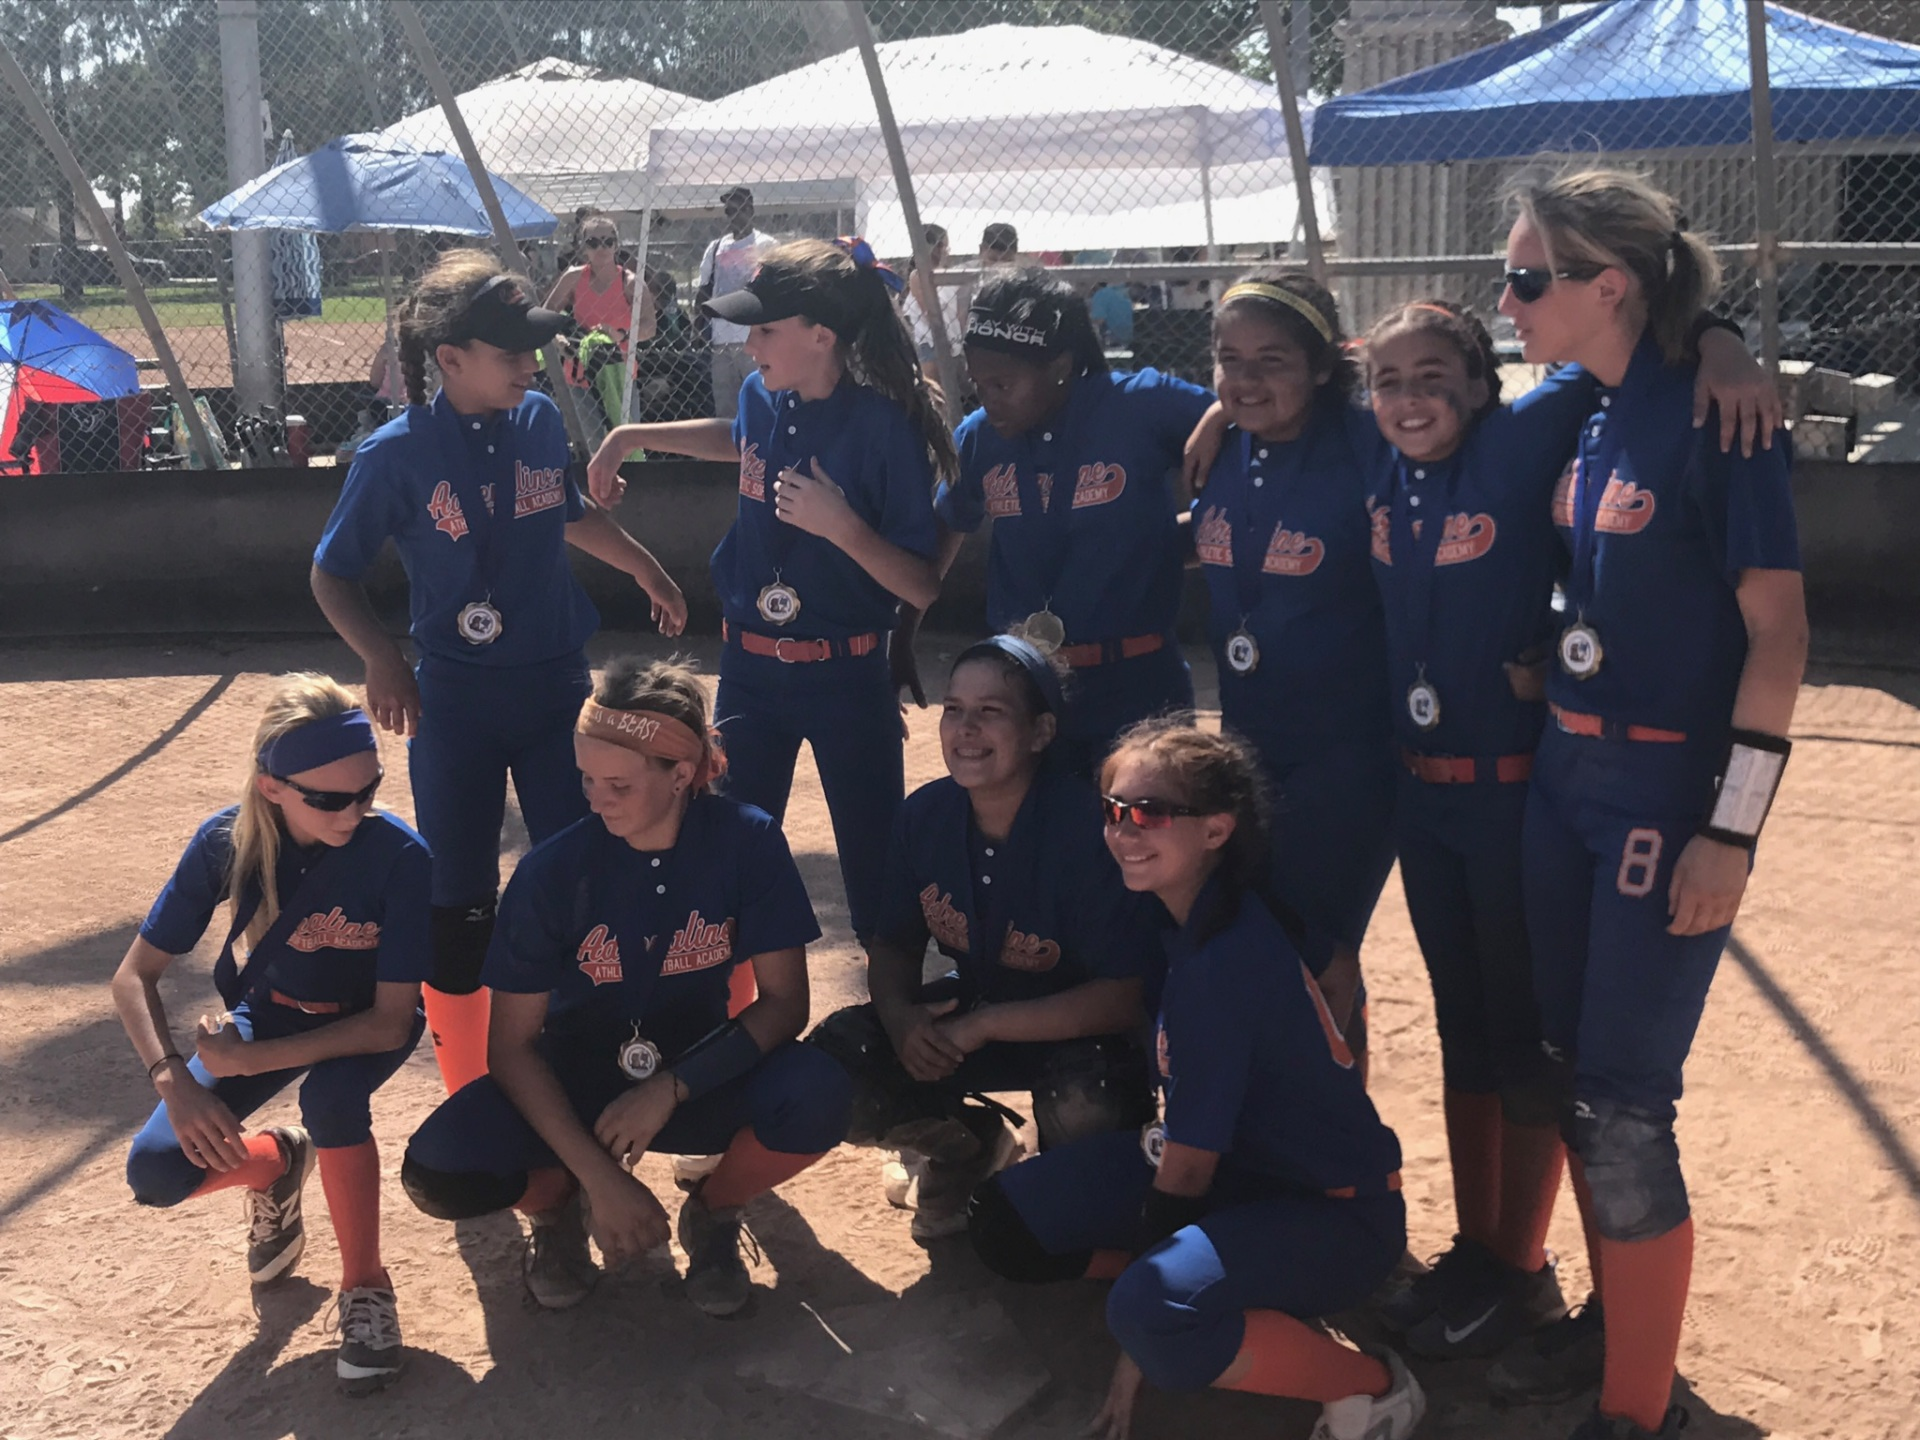 1st Place - Adrenaline Athletic 12u